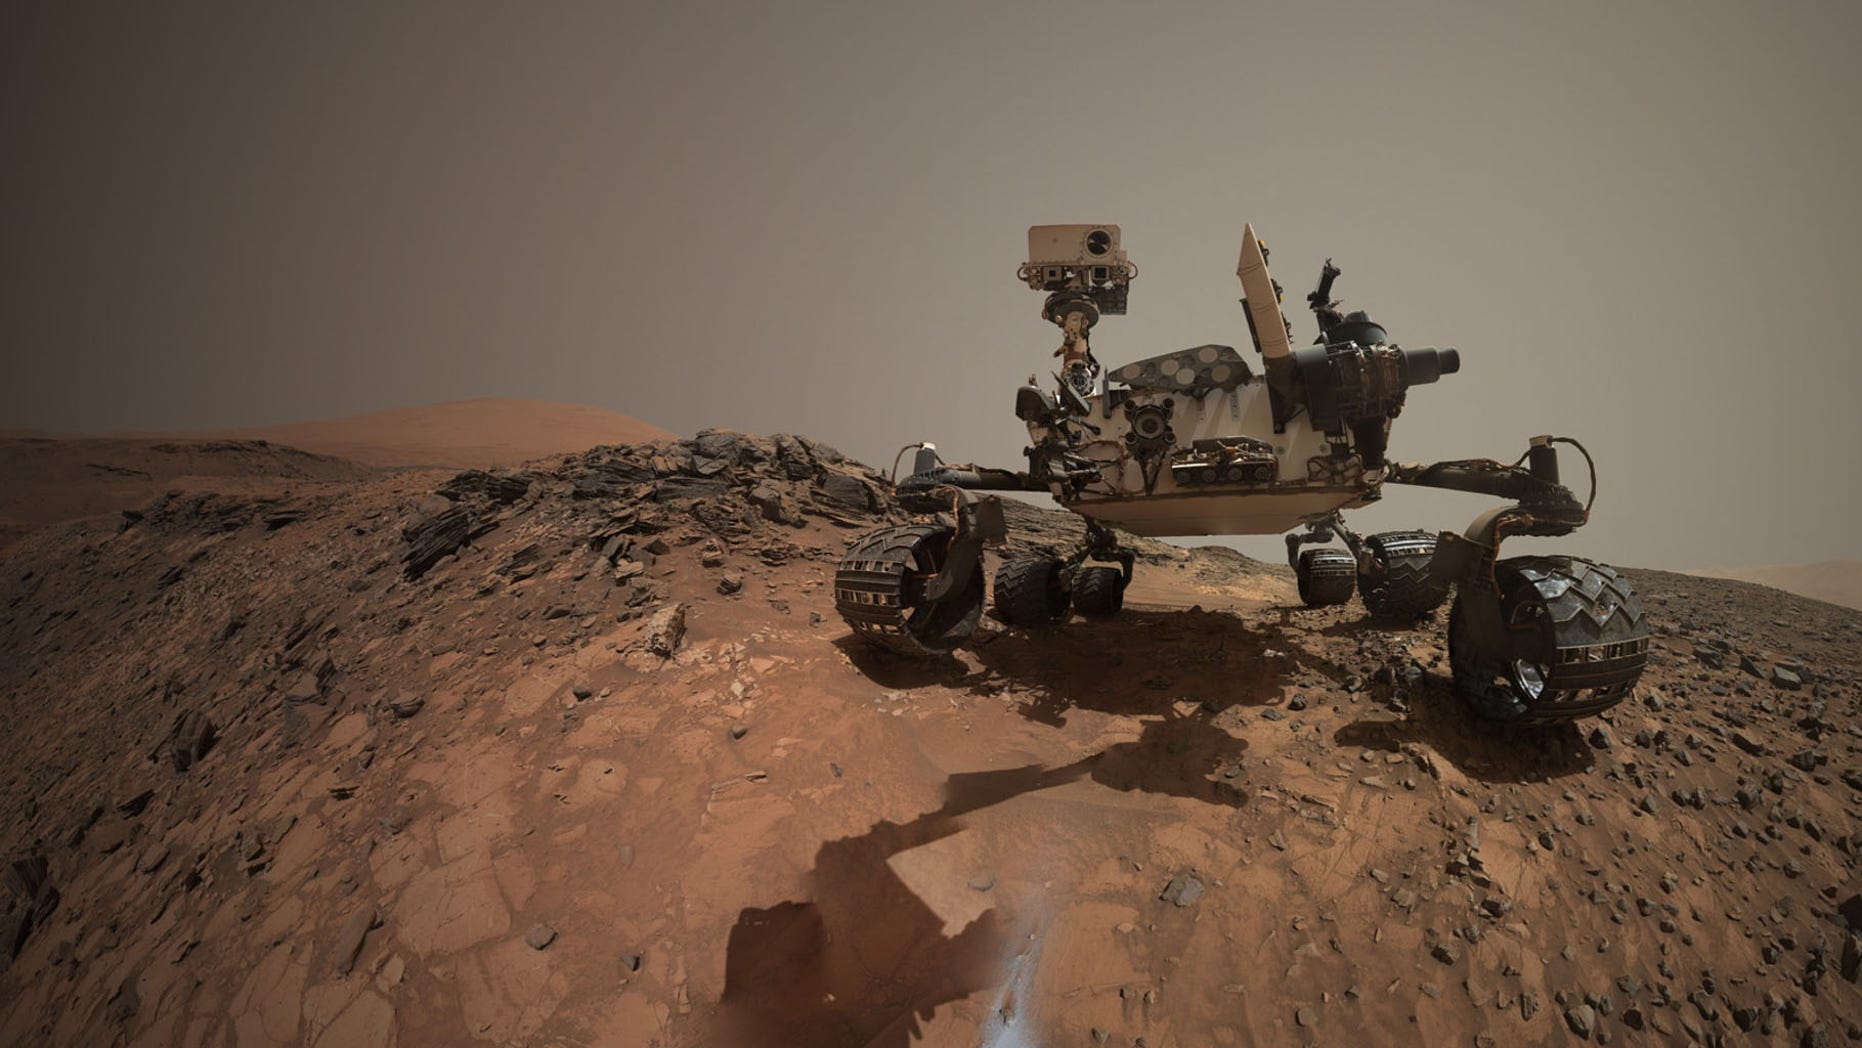 This self-portrait of Curiosity, which is a combination of images, shows the rover at the Buckskin drill site.